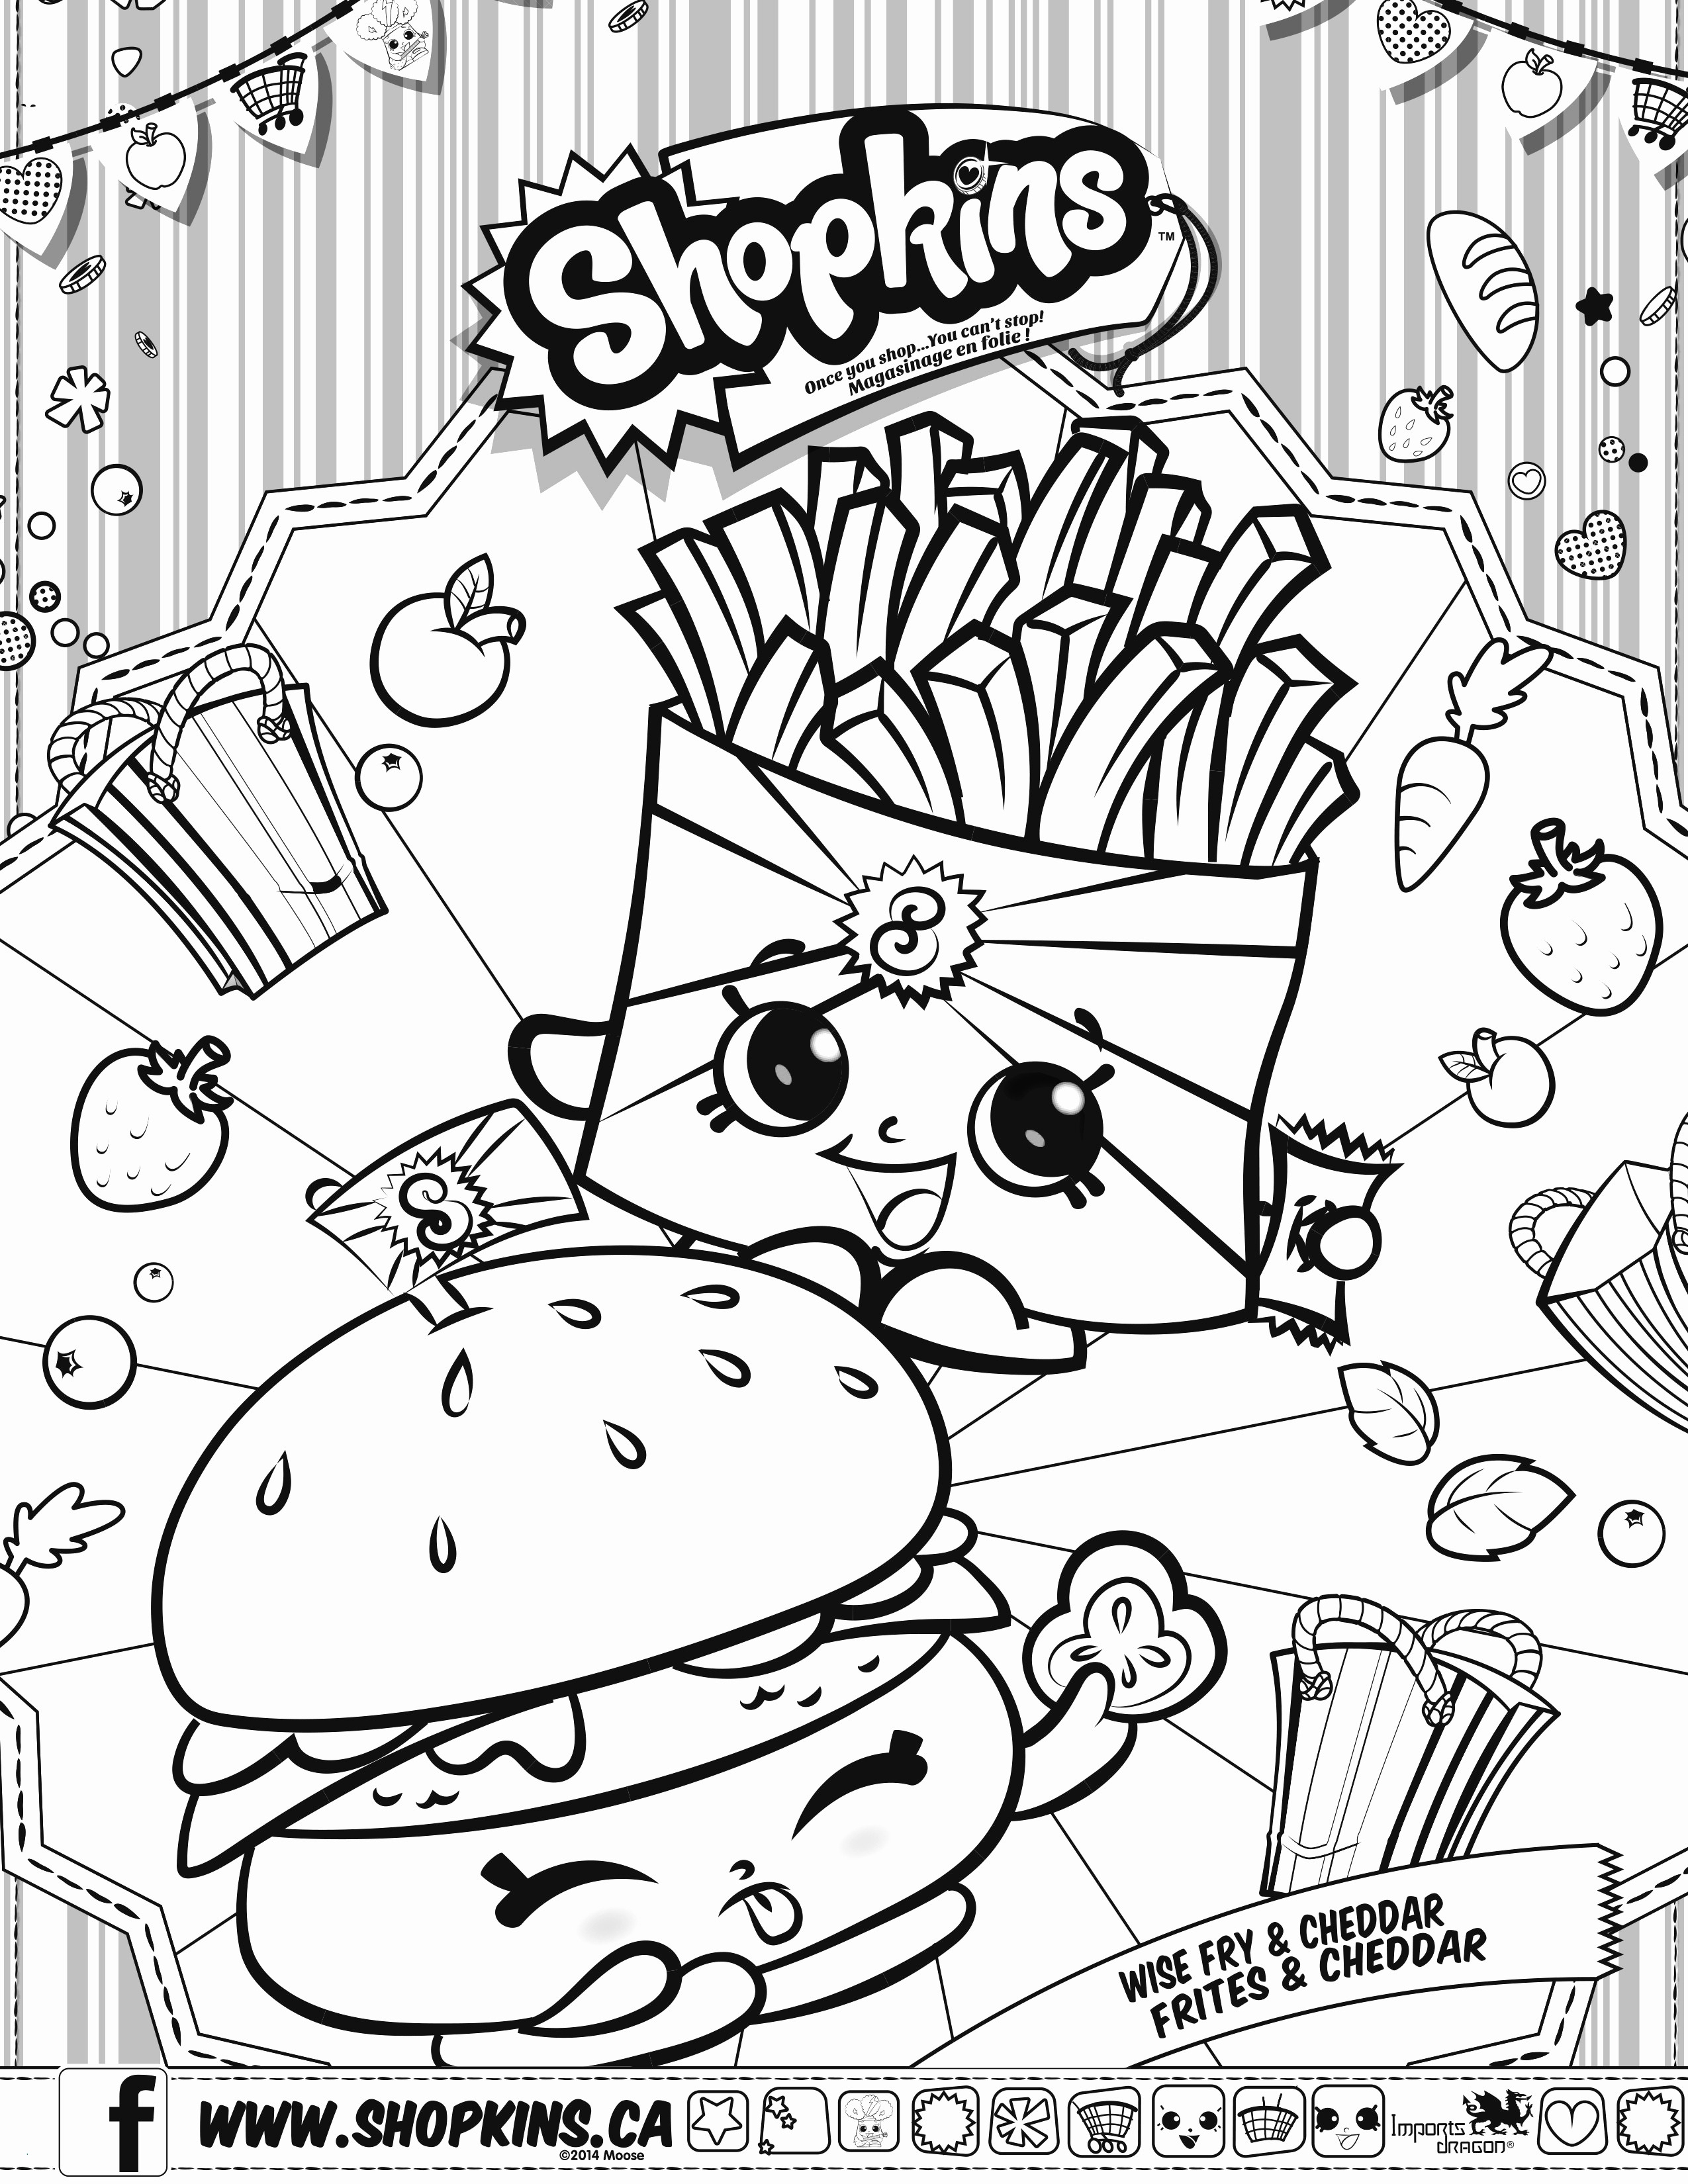 23 Xbox Coloring Pages Download - Coloring Sheets